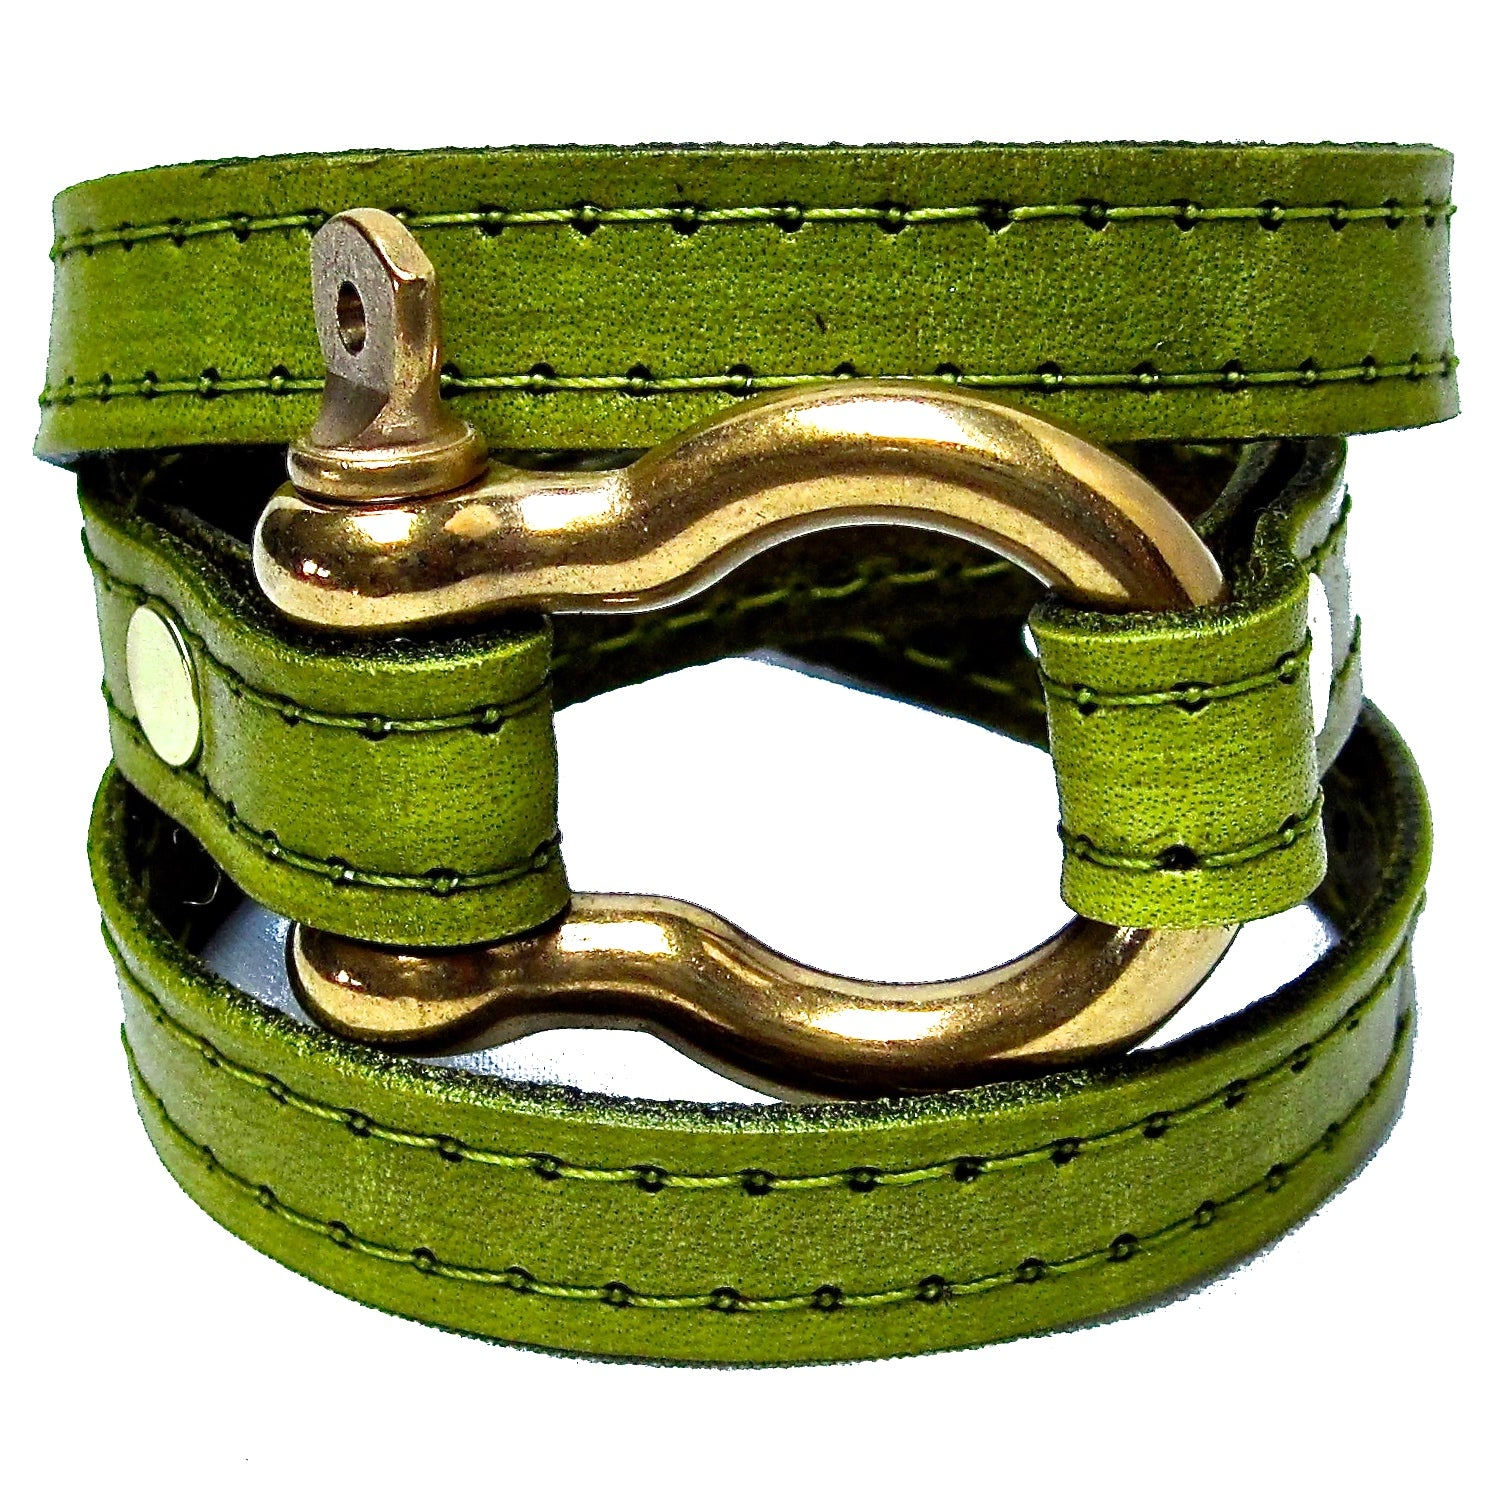 Nyet jewelry gold signature wraparound leather bracelet chartreuse BY NYET JEWELRY